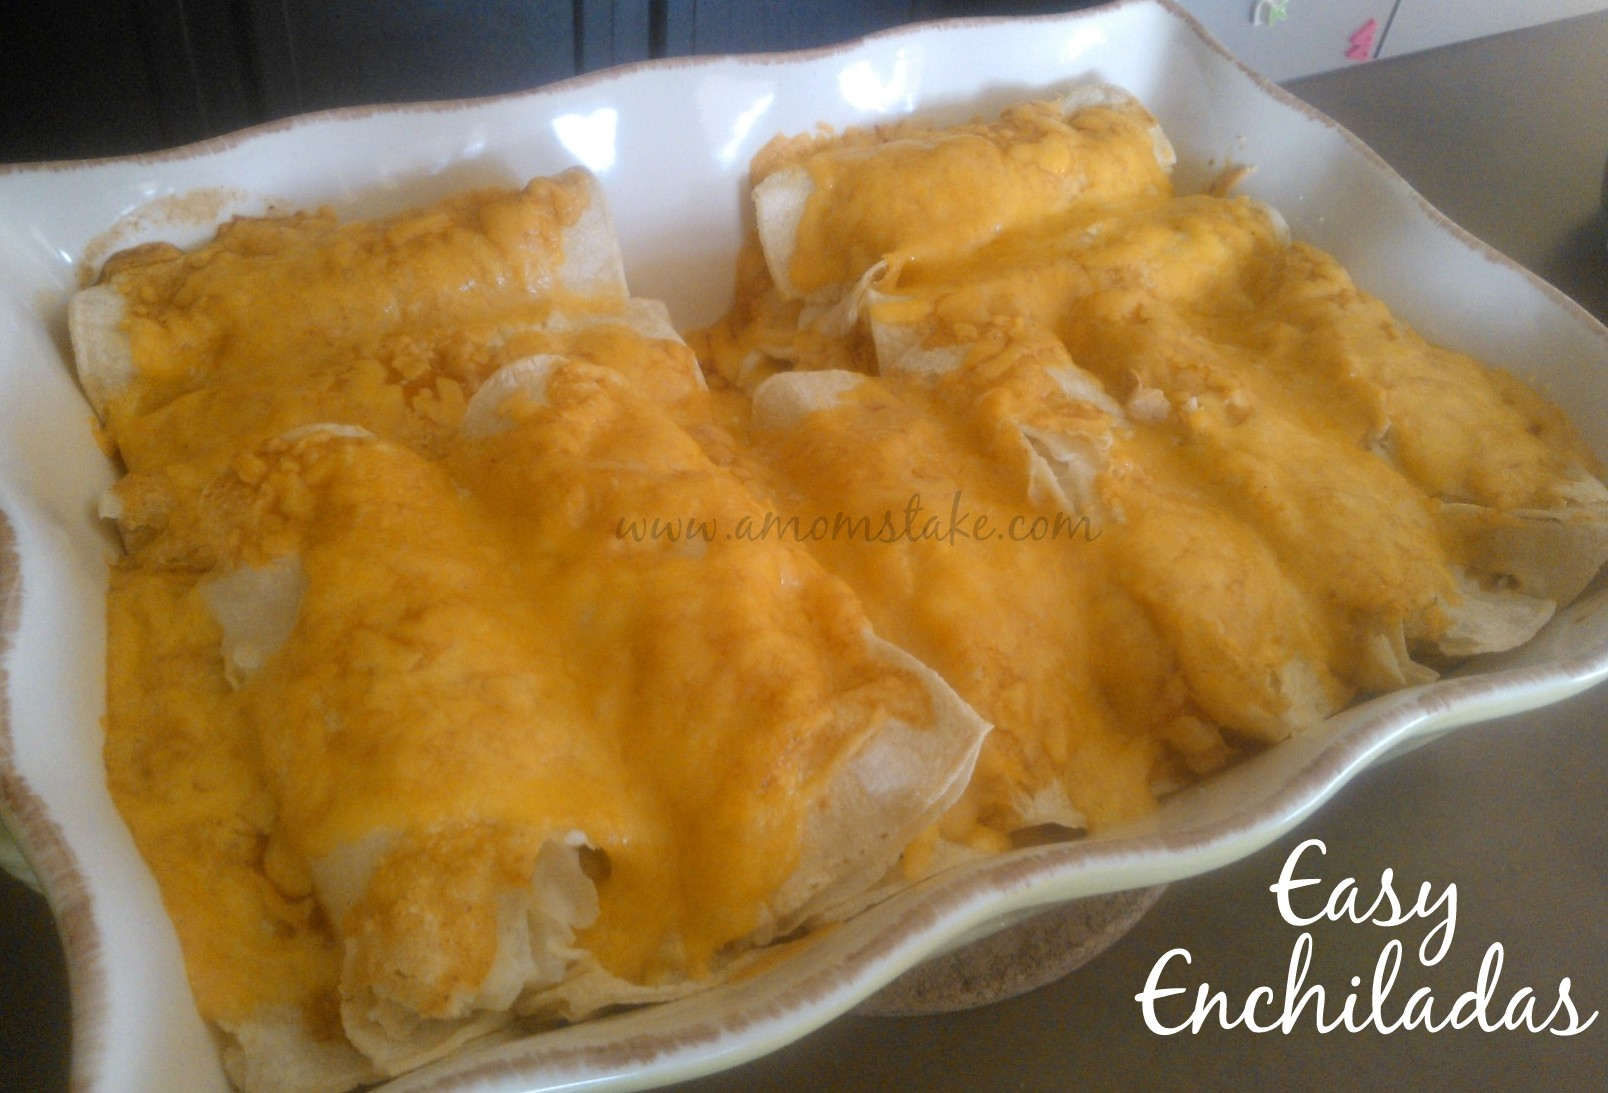 Easy dinner recipes easy chicken enchilada recipe a moms take easy chicken enchilada recipe forumfinder Choice Image